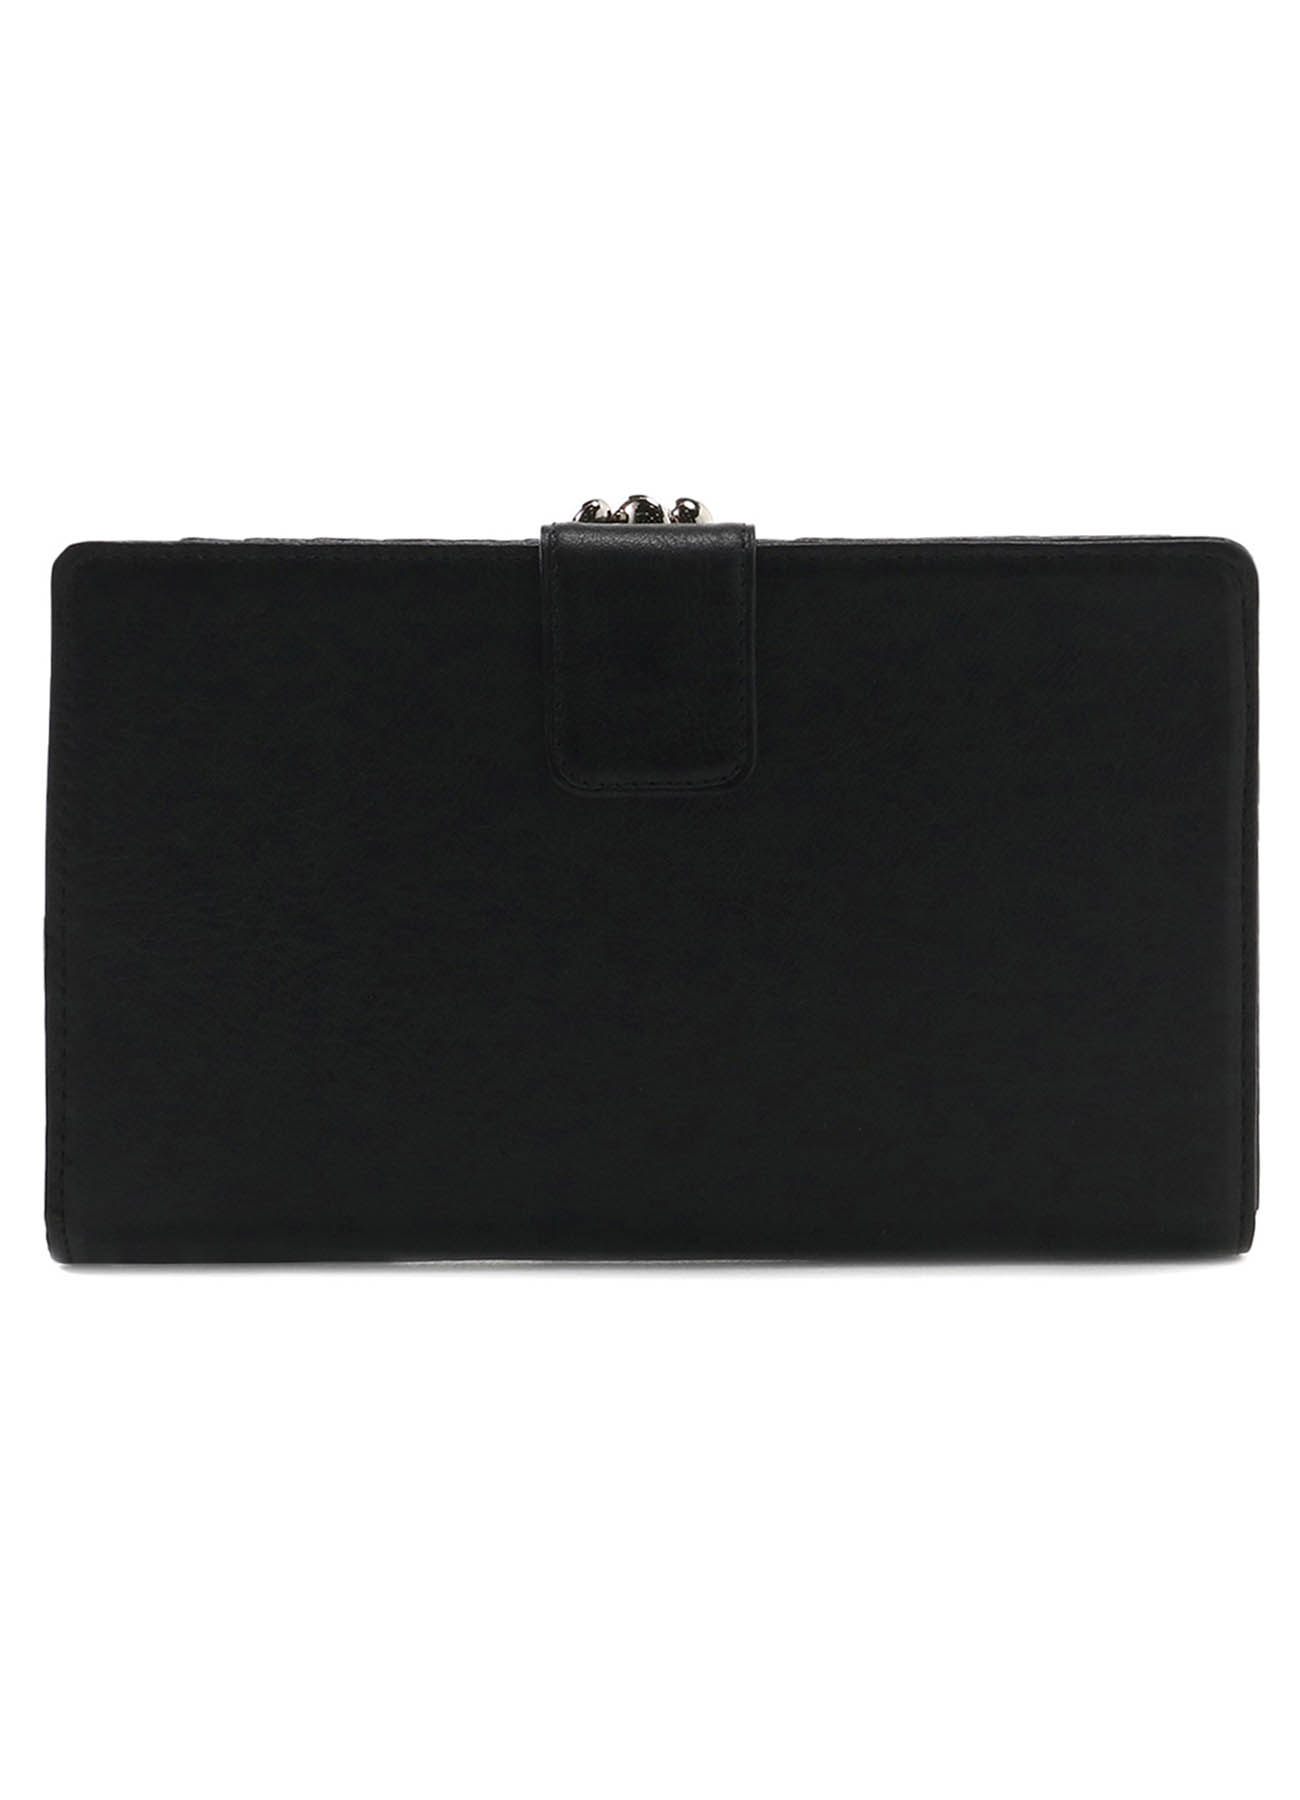 SEMI GLOSS LEATHER A CLASP LONG WALLET